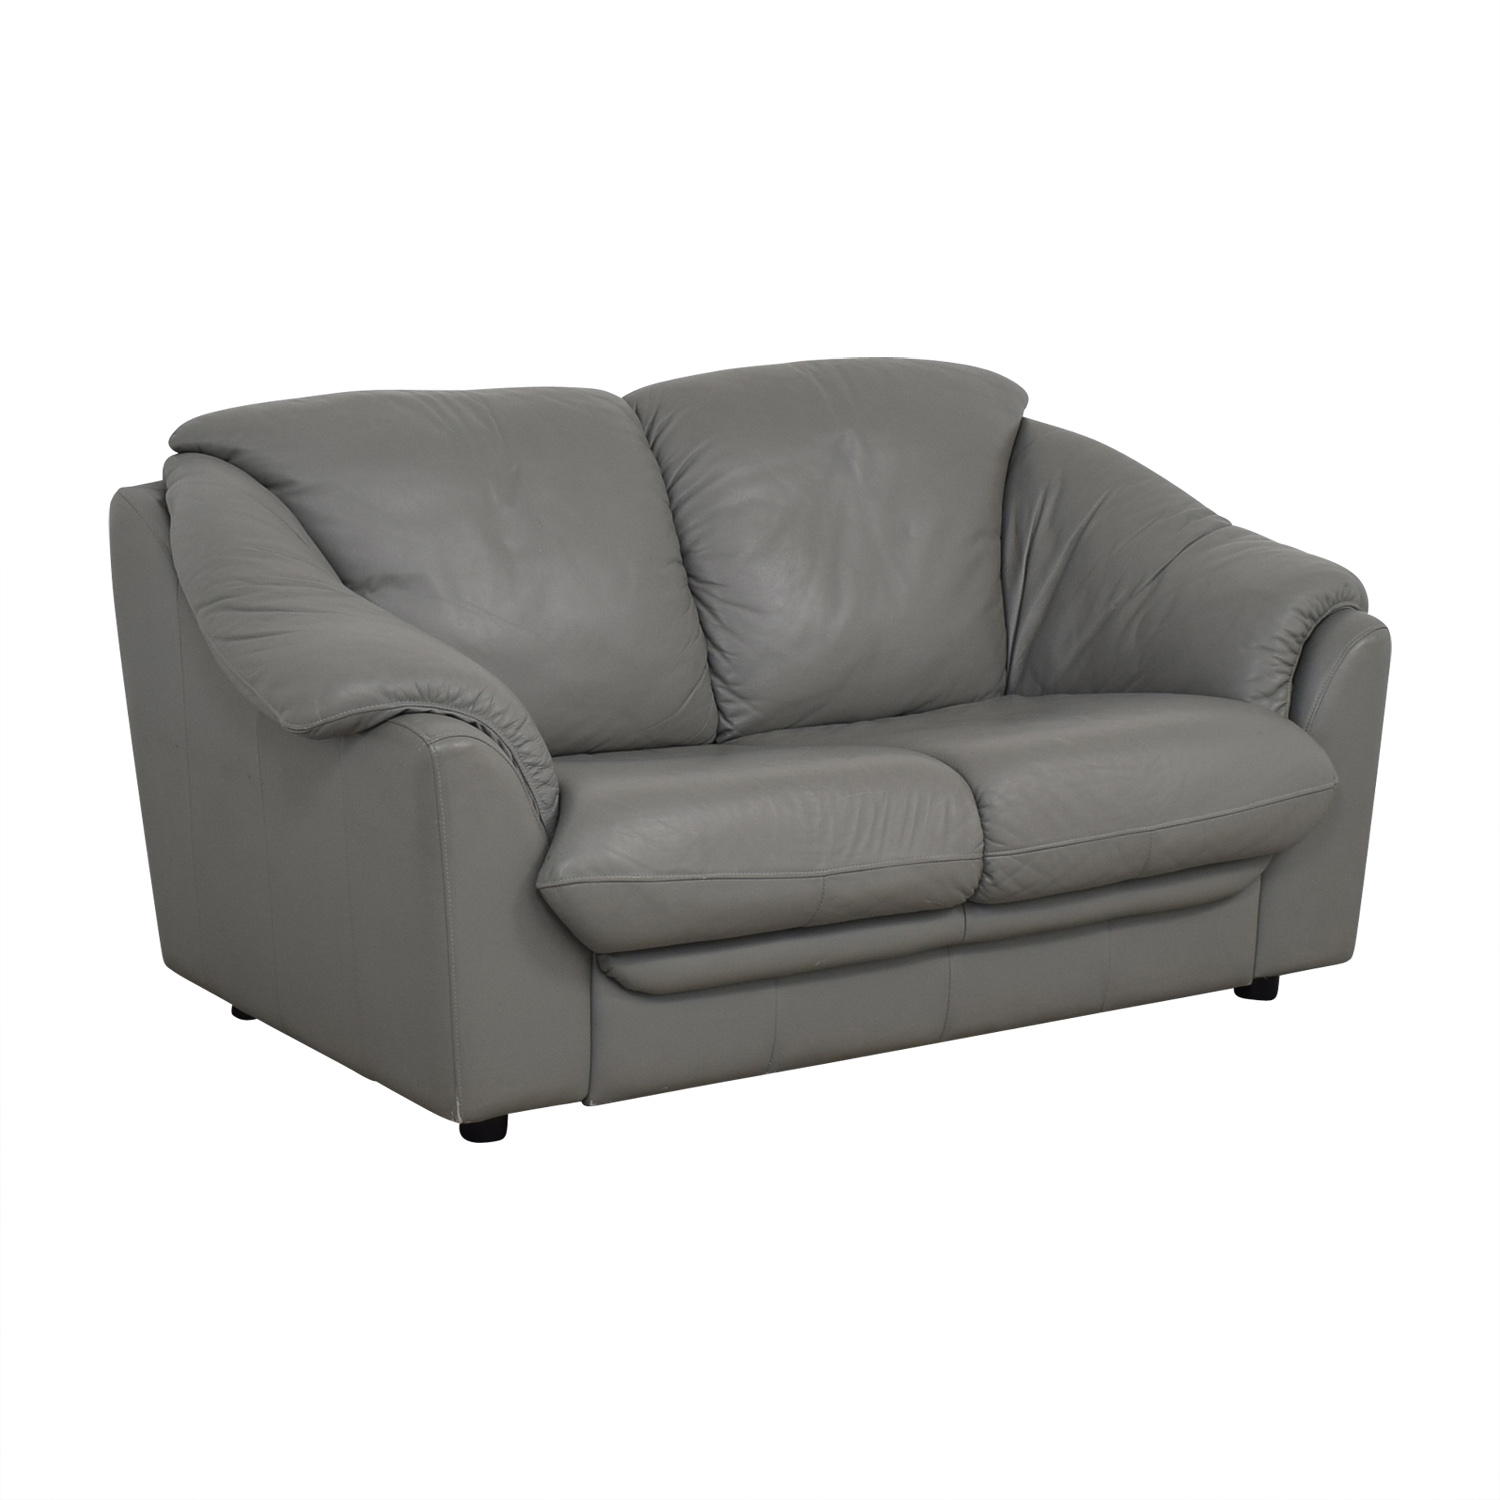 shop Italian Grey Two-Cushion Loveseat